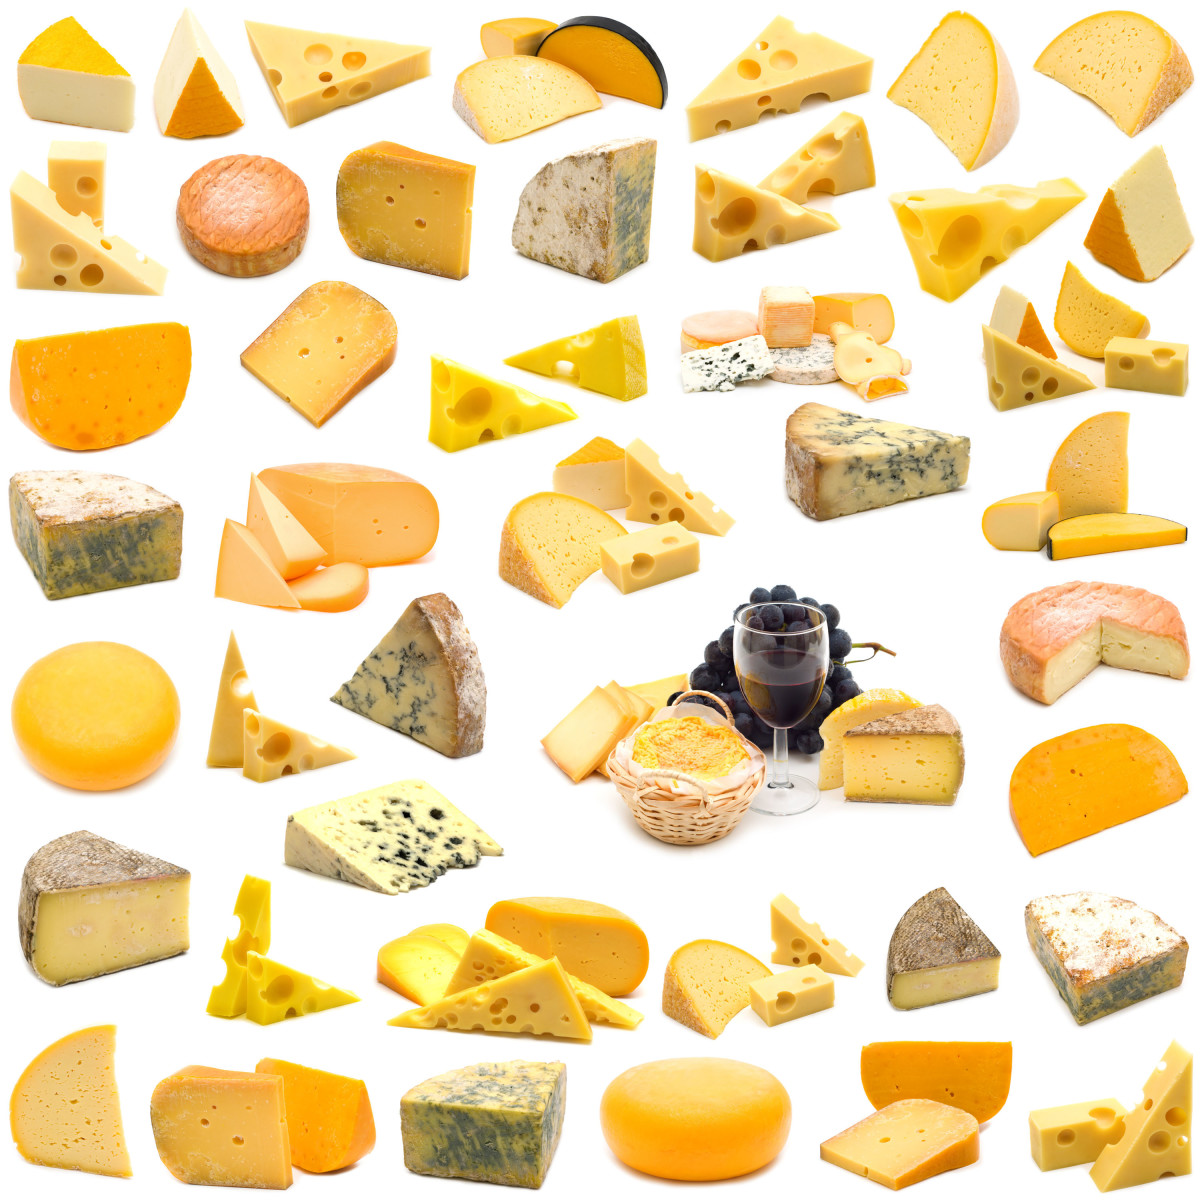 Cheese-world, there are hundreds of different cheese